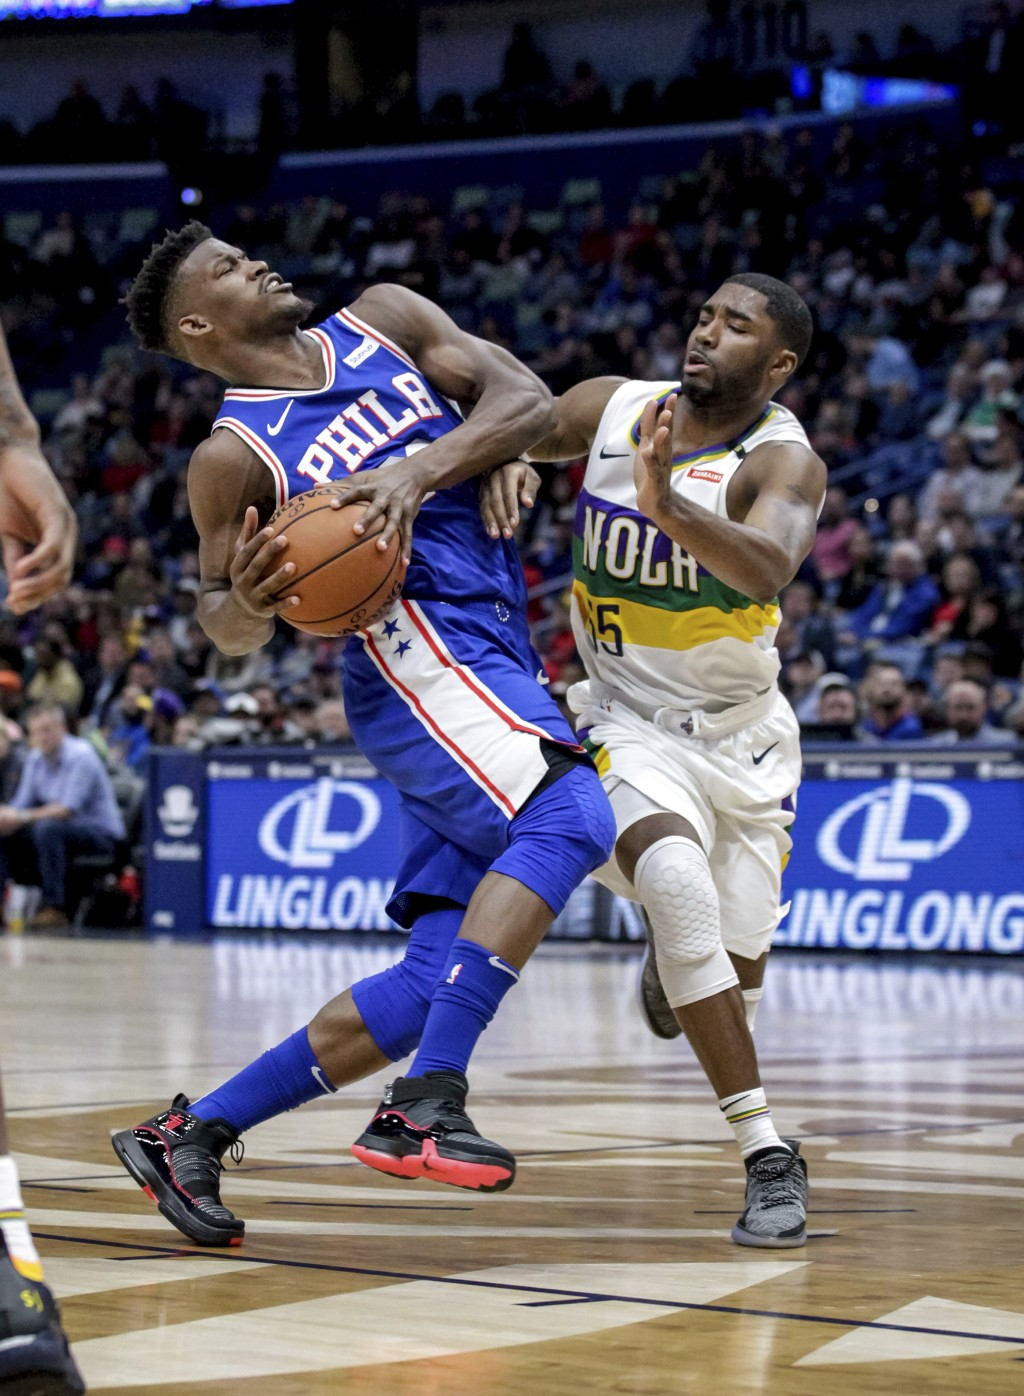 Philadelphia 76ers guard Jimmy Butler, left, drives against New Orleans Pelicans guard E'Twaun Moore (55) in the first half of an NBA basketball game